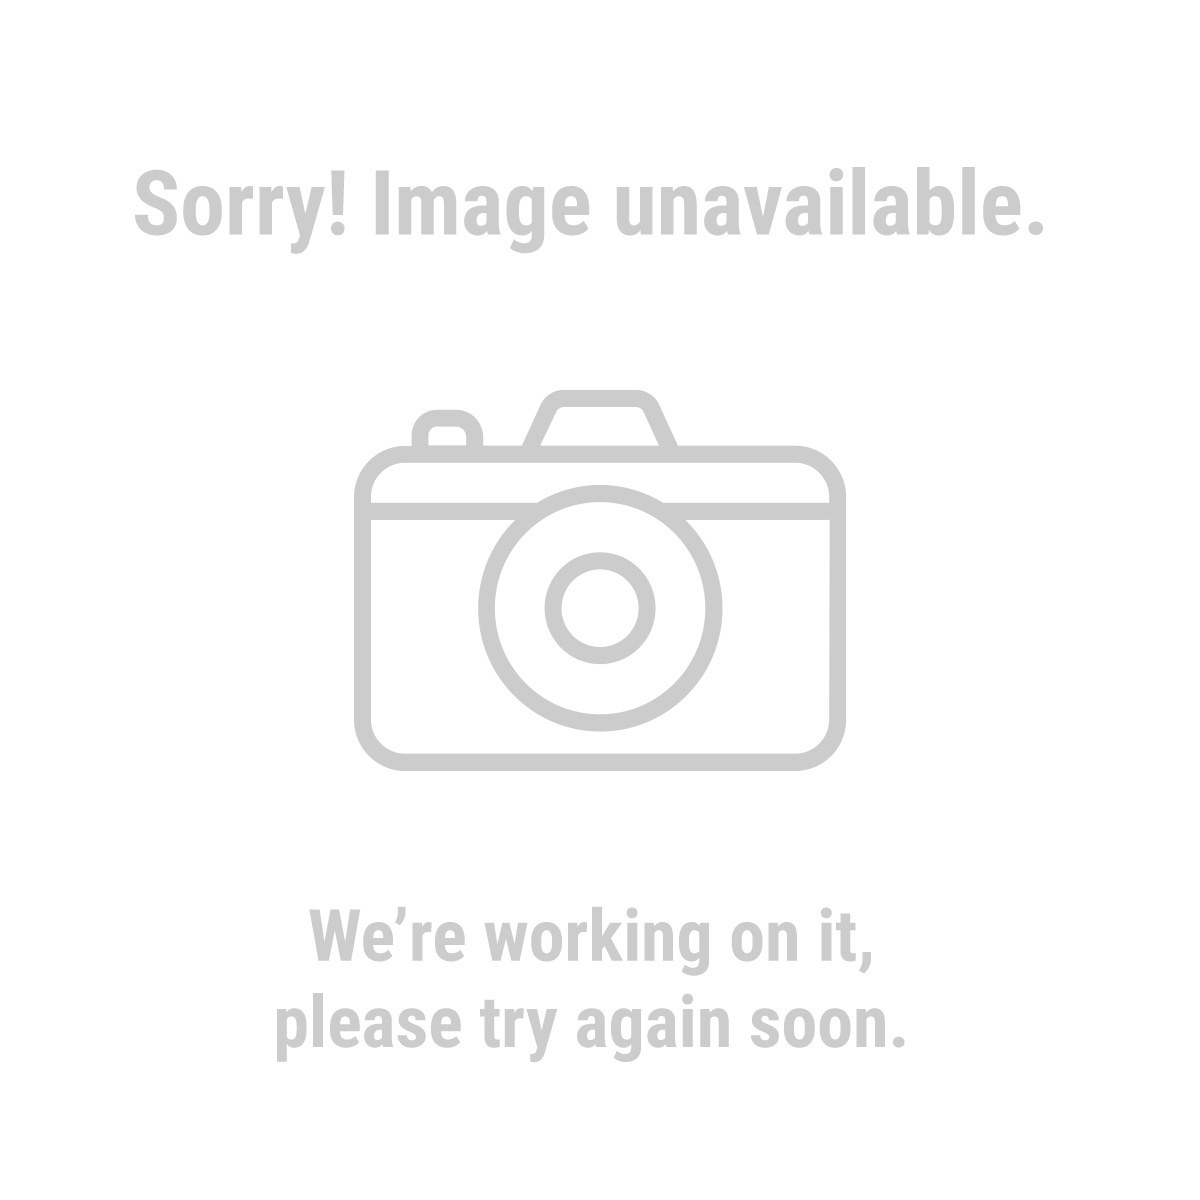 Greenwood® 63124 1-1/4 gal. Home and Garden Sprayer